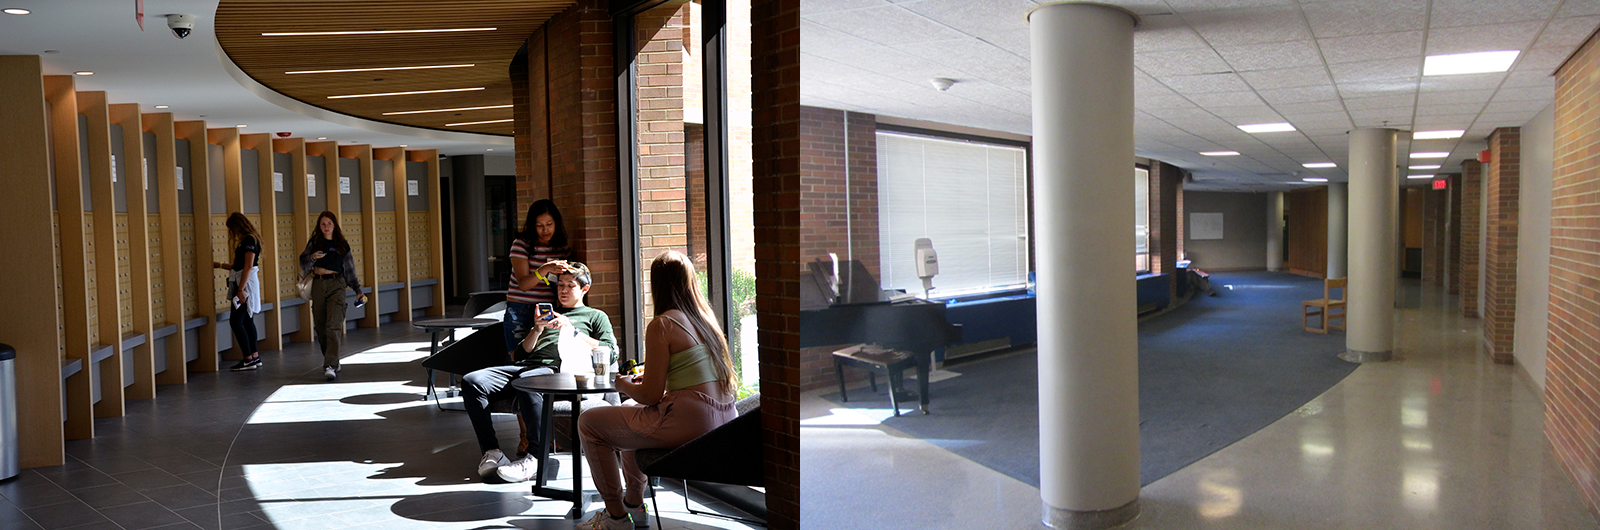 In this side-by-side picture of the first floor of Bentley Hall before (right) and after (left) construction, it's easy to see the brand new windows on both sides of the building, as well as the improved flow through the space.